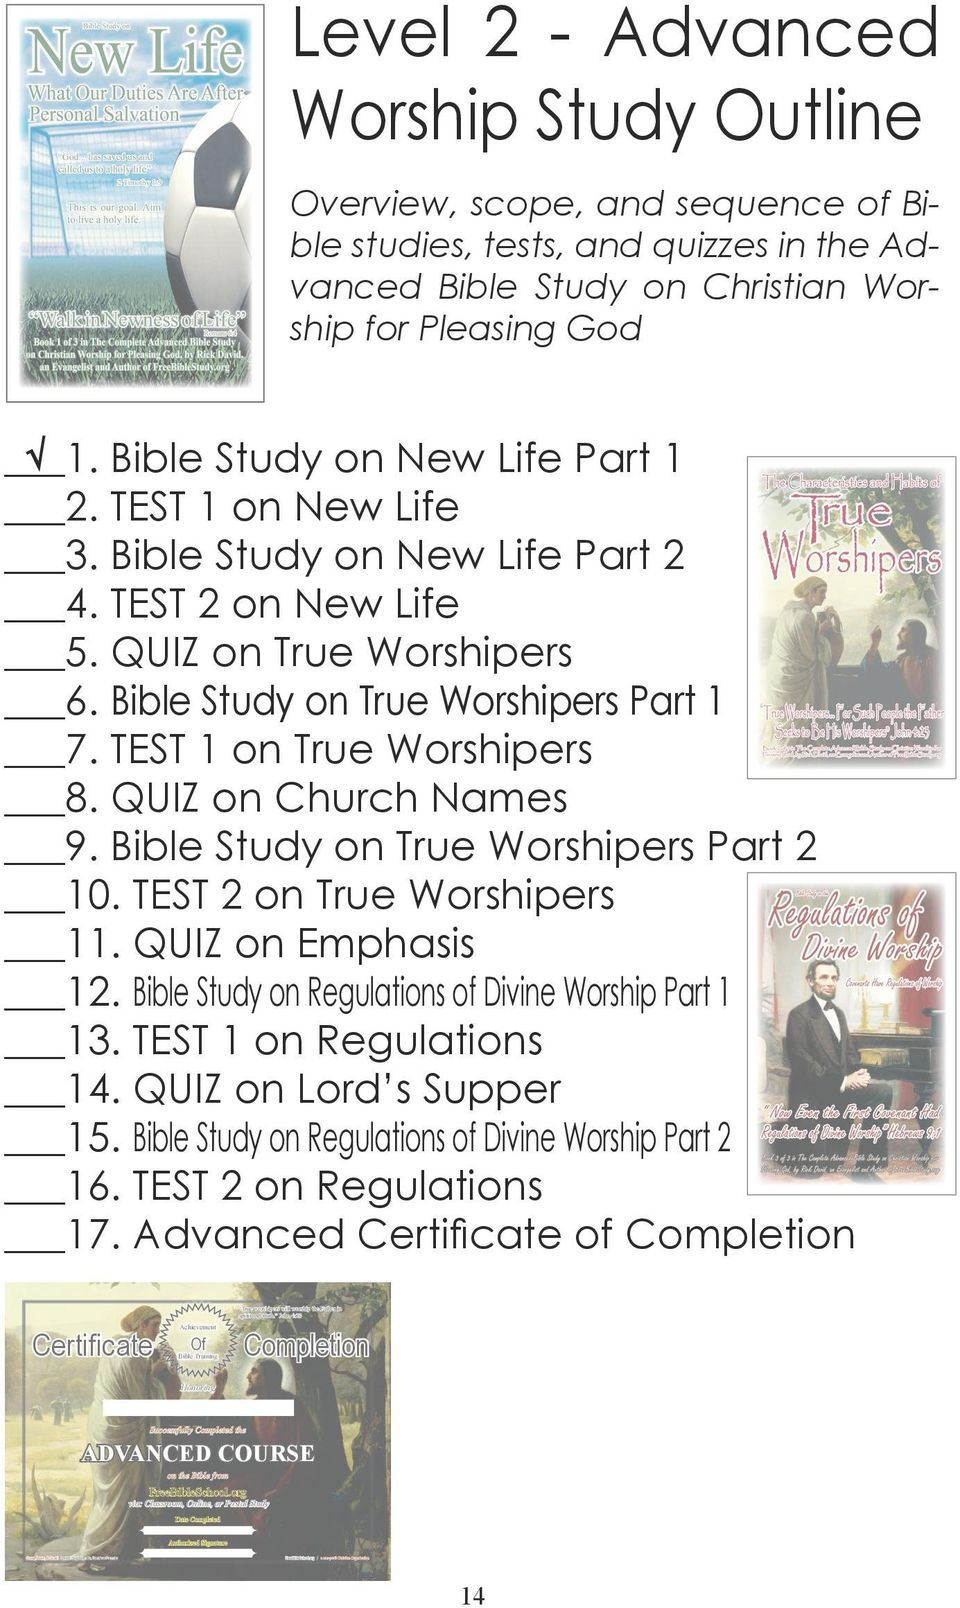 for Pleasing God 1. Bible Study on New Life Part 1 2. TEST 1 on New Life 3. Bible Study on New Life Part 2 4. TEST 2 on New Life 5. QUIZ on True Worshipers 6. Bible Study on True Worshipers Part 1 7.